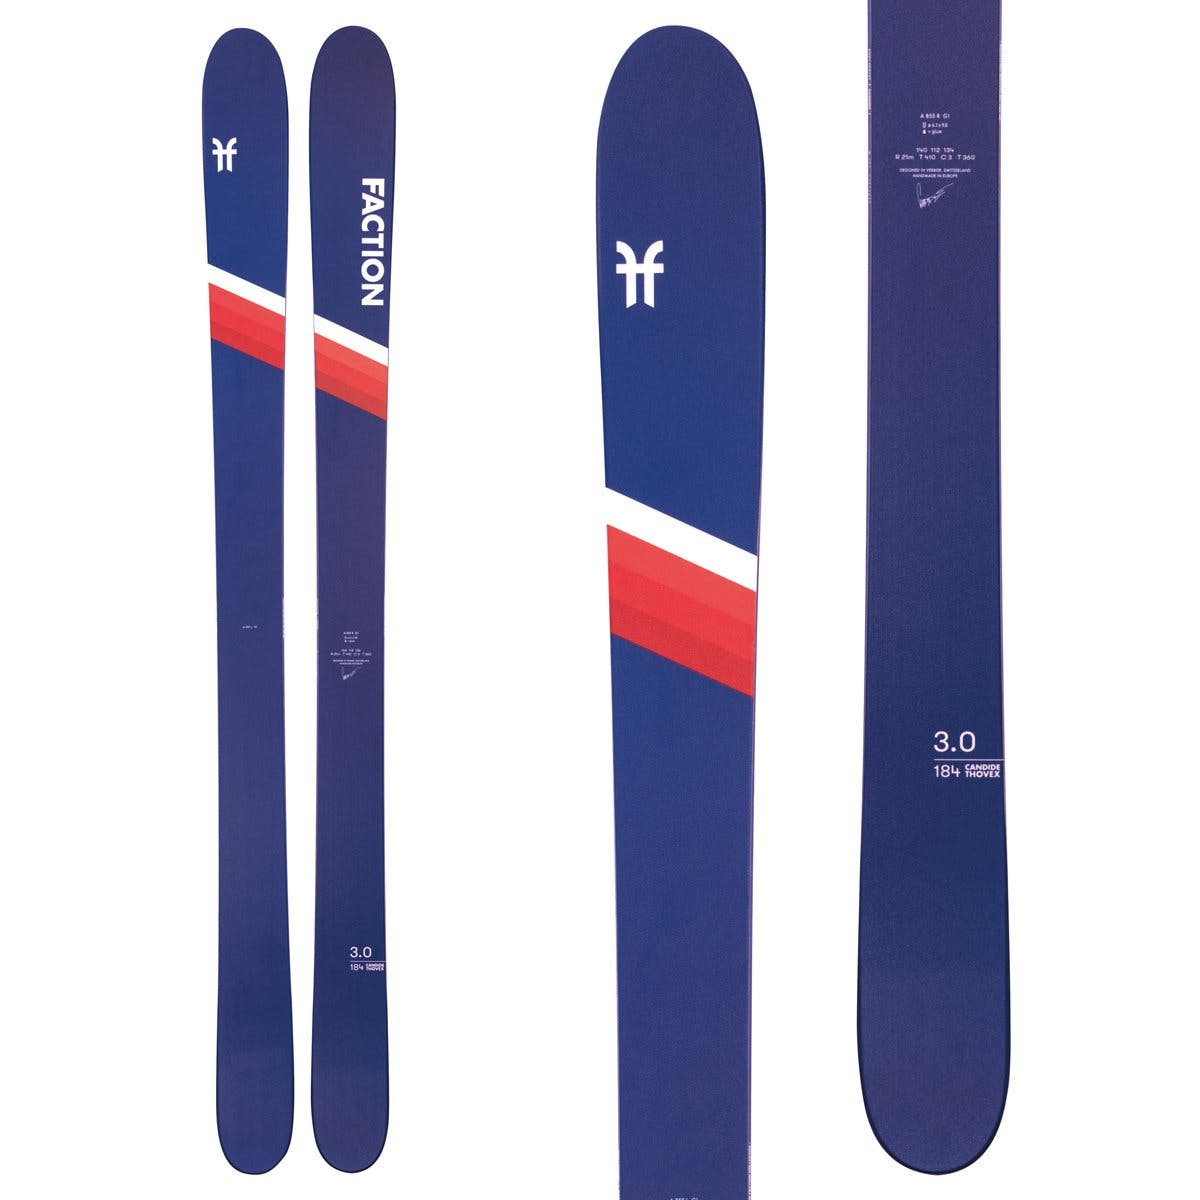 Faction Ski Candide 3.0 Skis · 2021